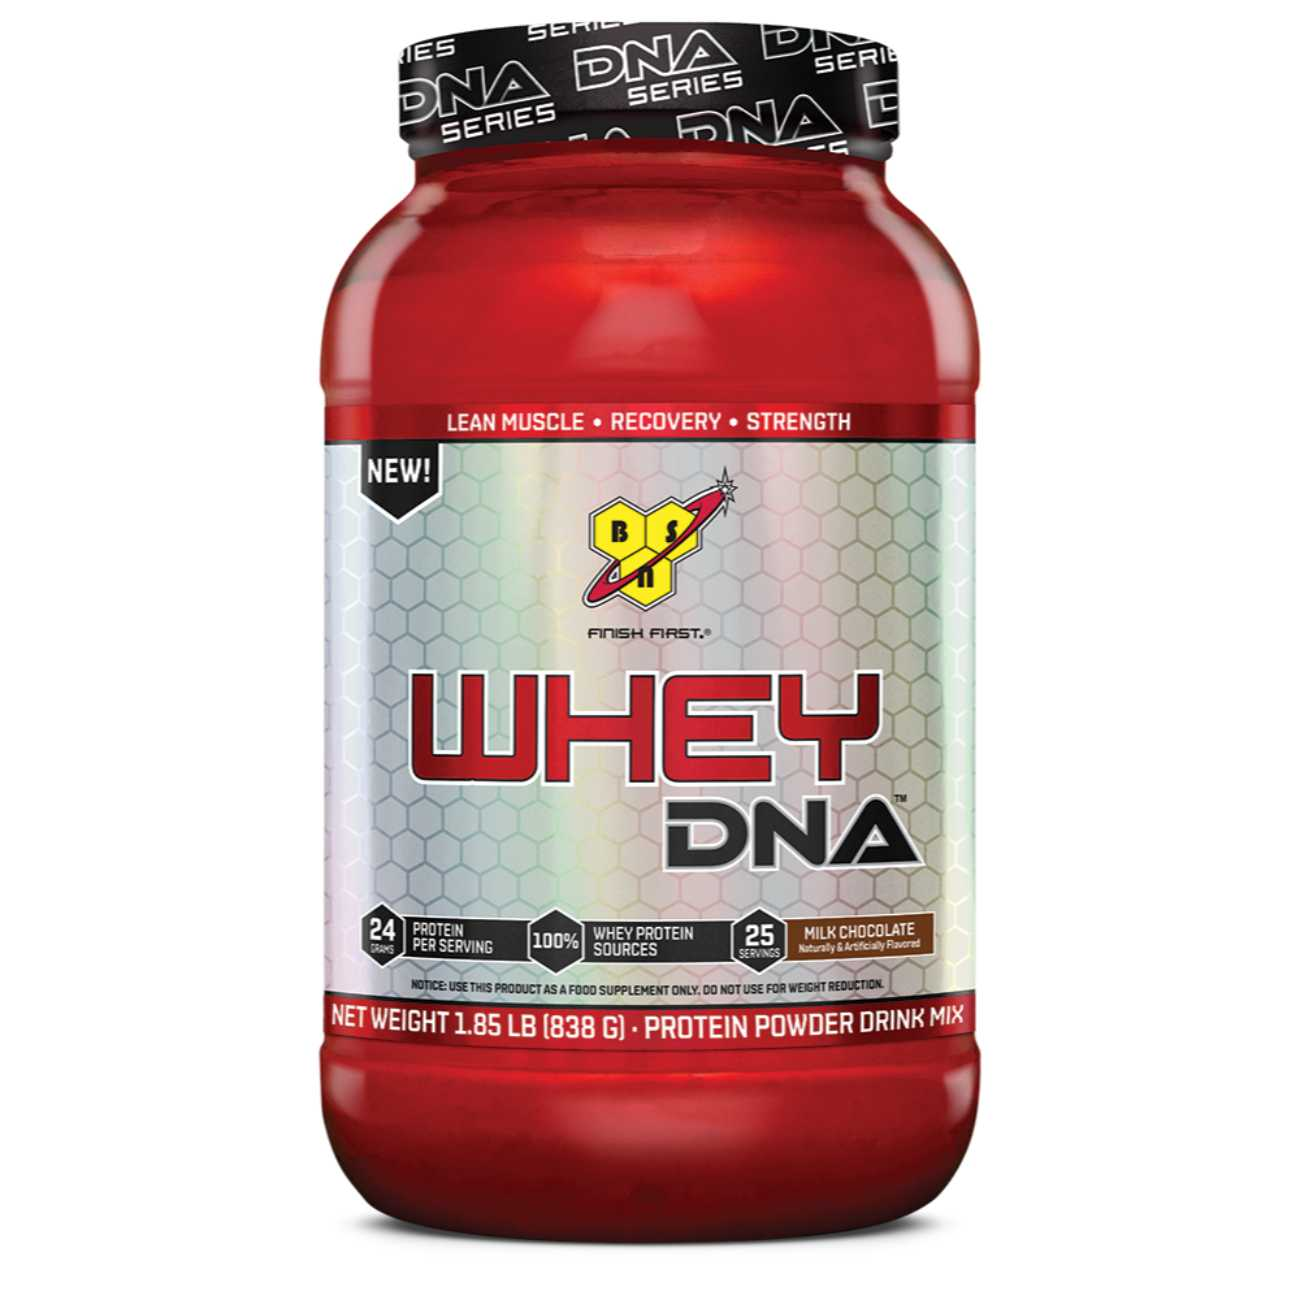 BSN Whey Protein DNA – 1.8 Lb, Chocolate